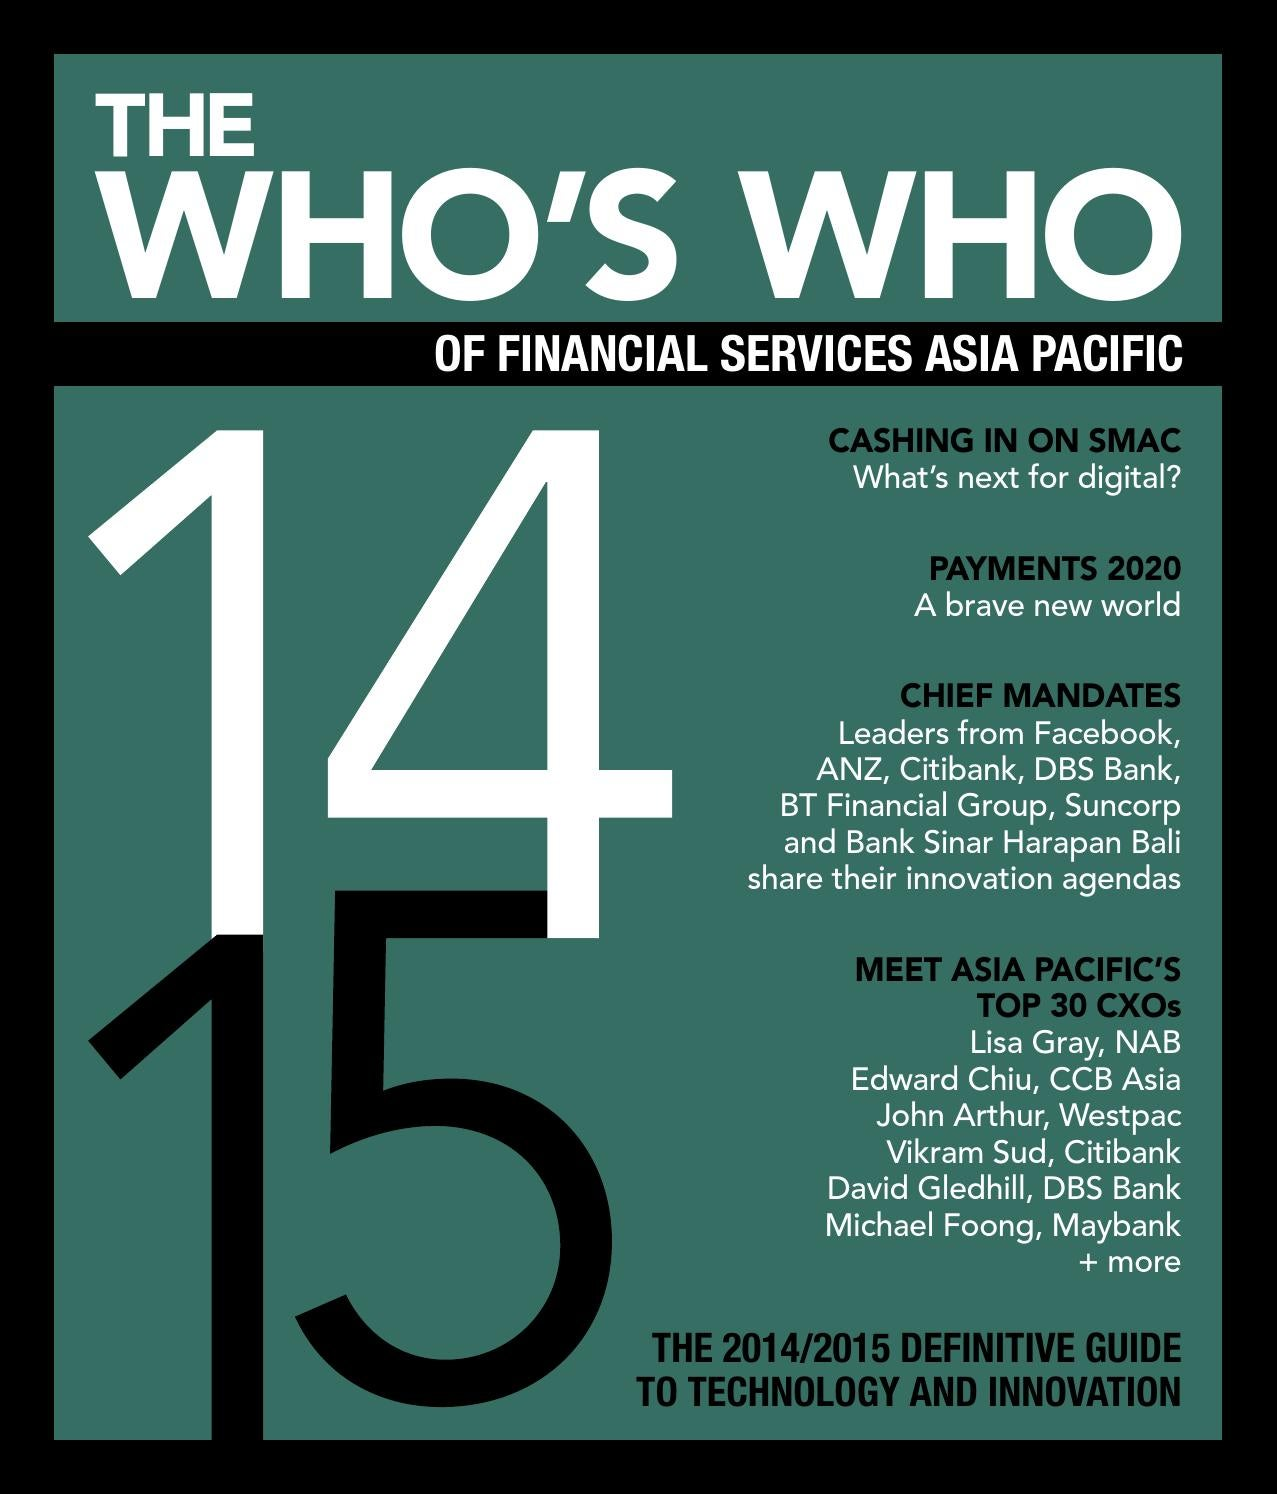 Av asia pacific magazine the new samsung smart signage platform av - Who S Who Of Financial Services Asia Pacific 2014 15 By Fst Media Issuu